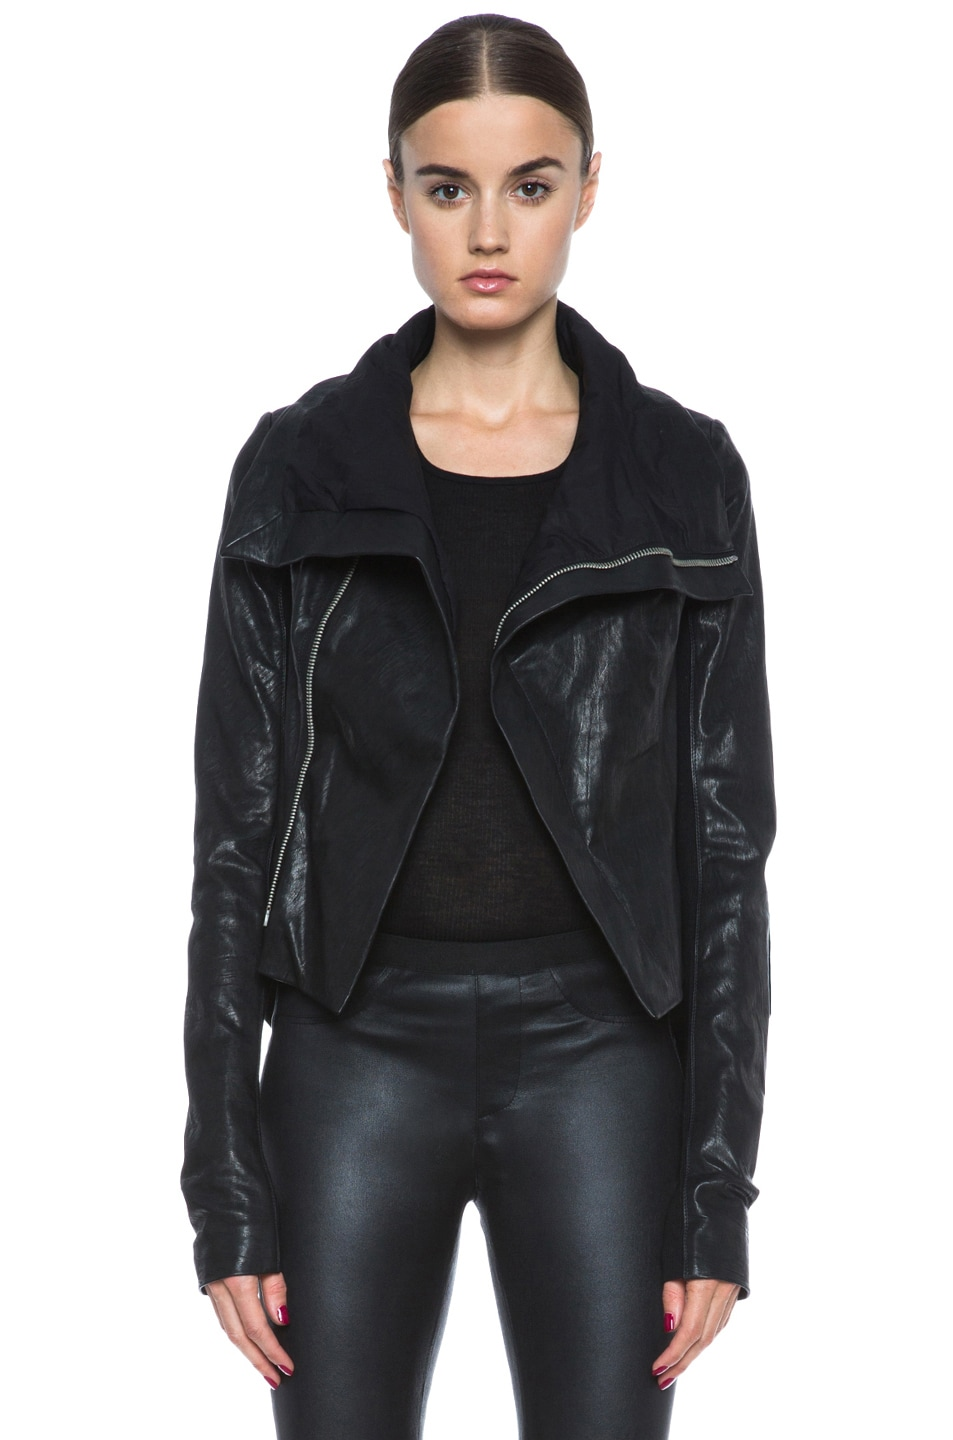 ac75f849d8 Image 1 of Rick Owens Naska Lambskin Leather Biker Jacket in Black